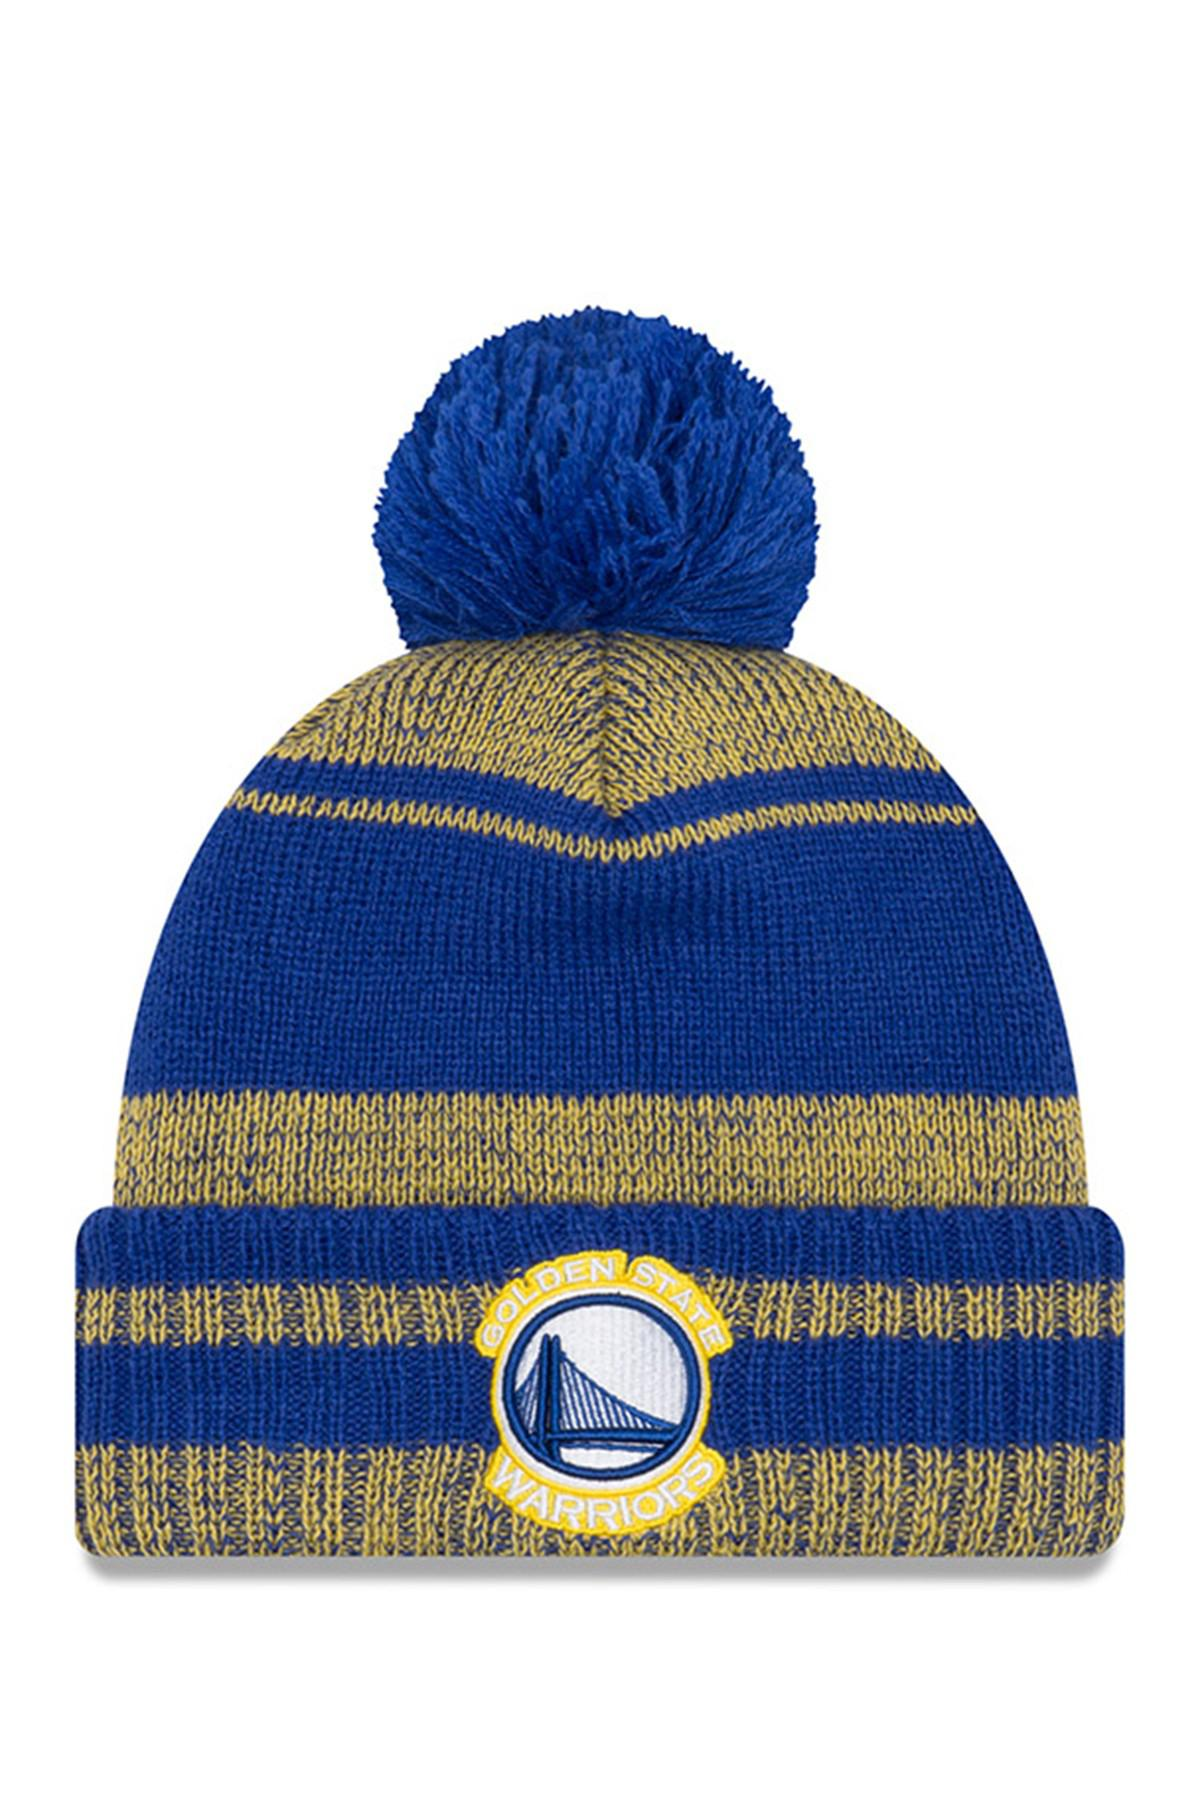 77171779a Lyst - KTZ Nfl Golden State Warriors Glacial Pom Knit Beanie in Blue ...